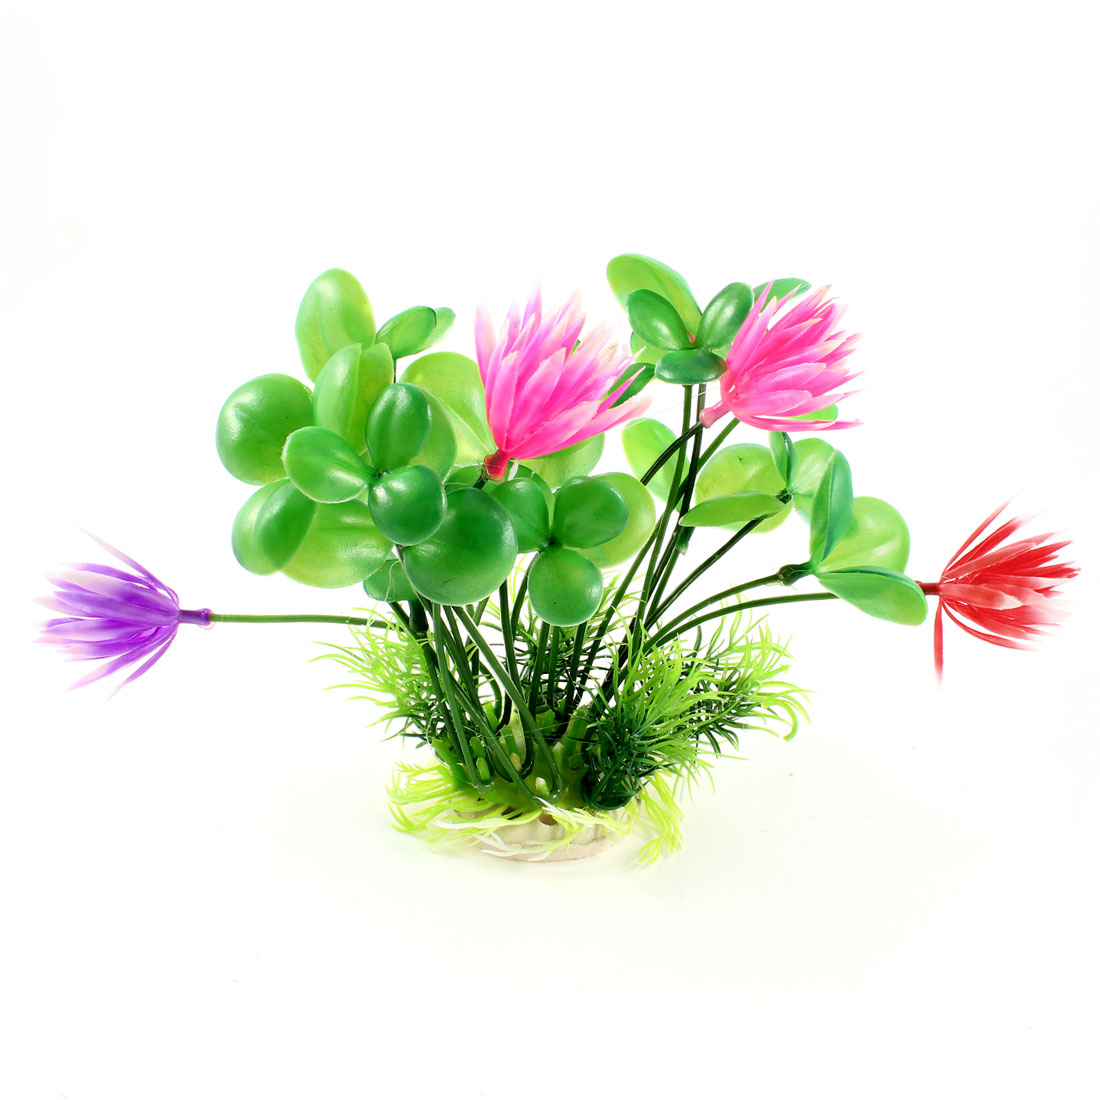 "6.5"" High Aquarium Landscaping Manmade Water Flower Plant Green Magenta"